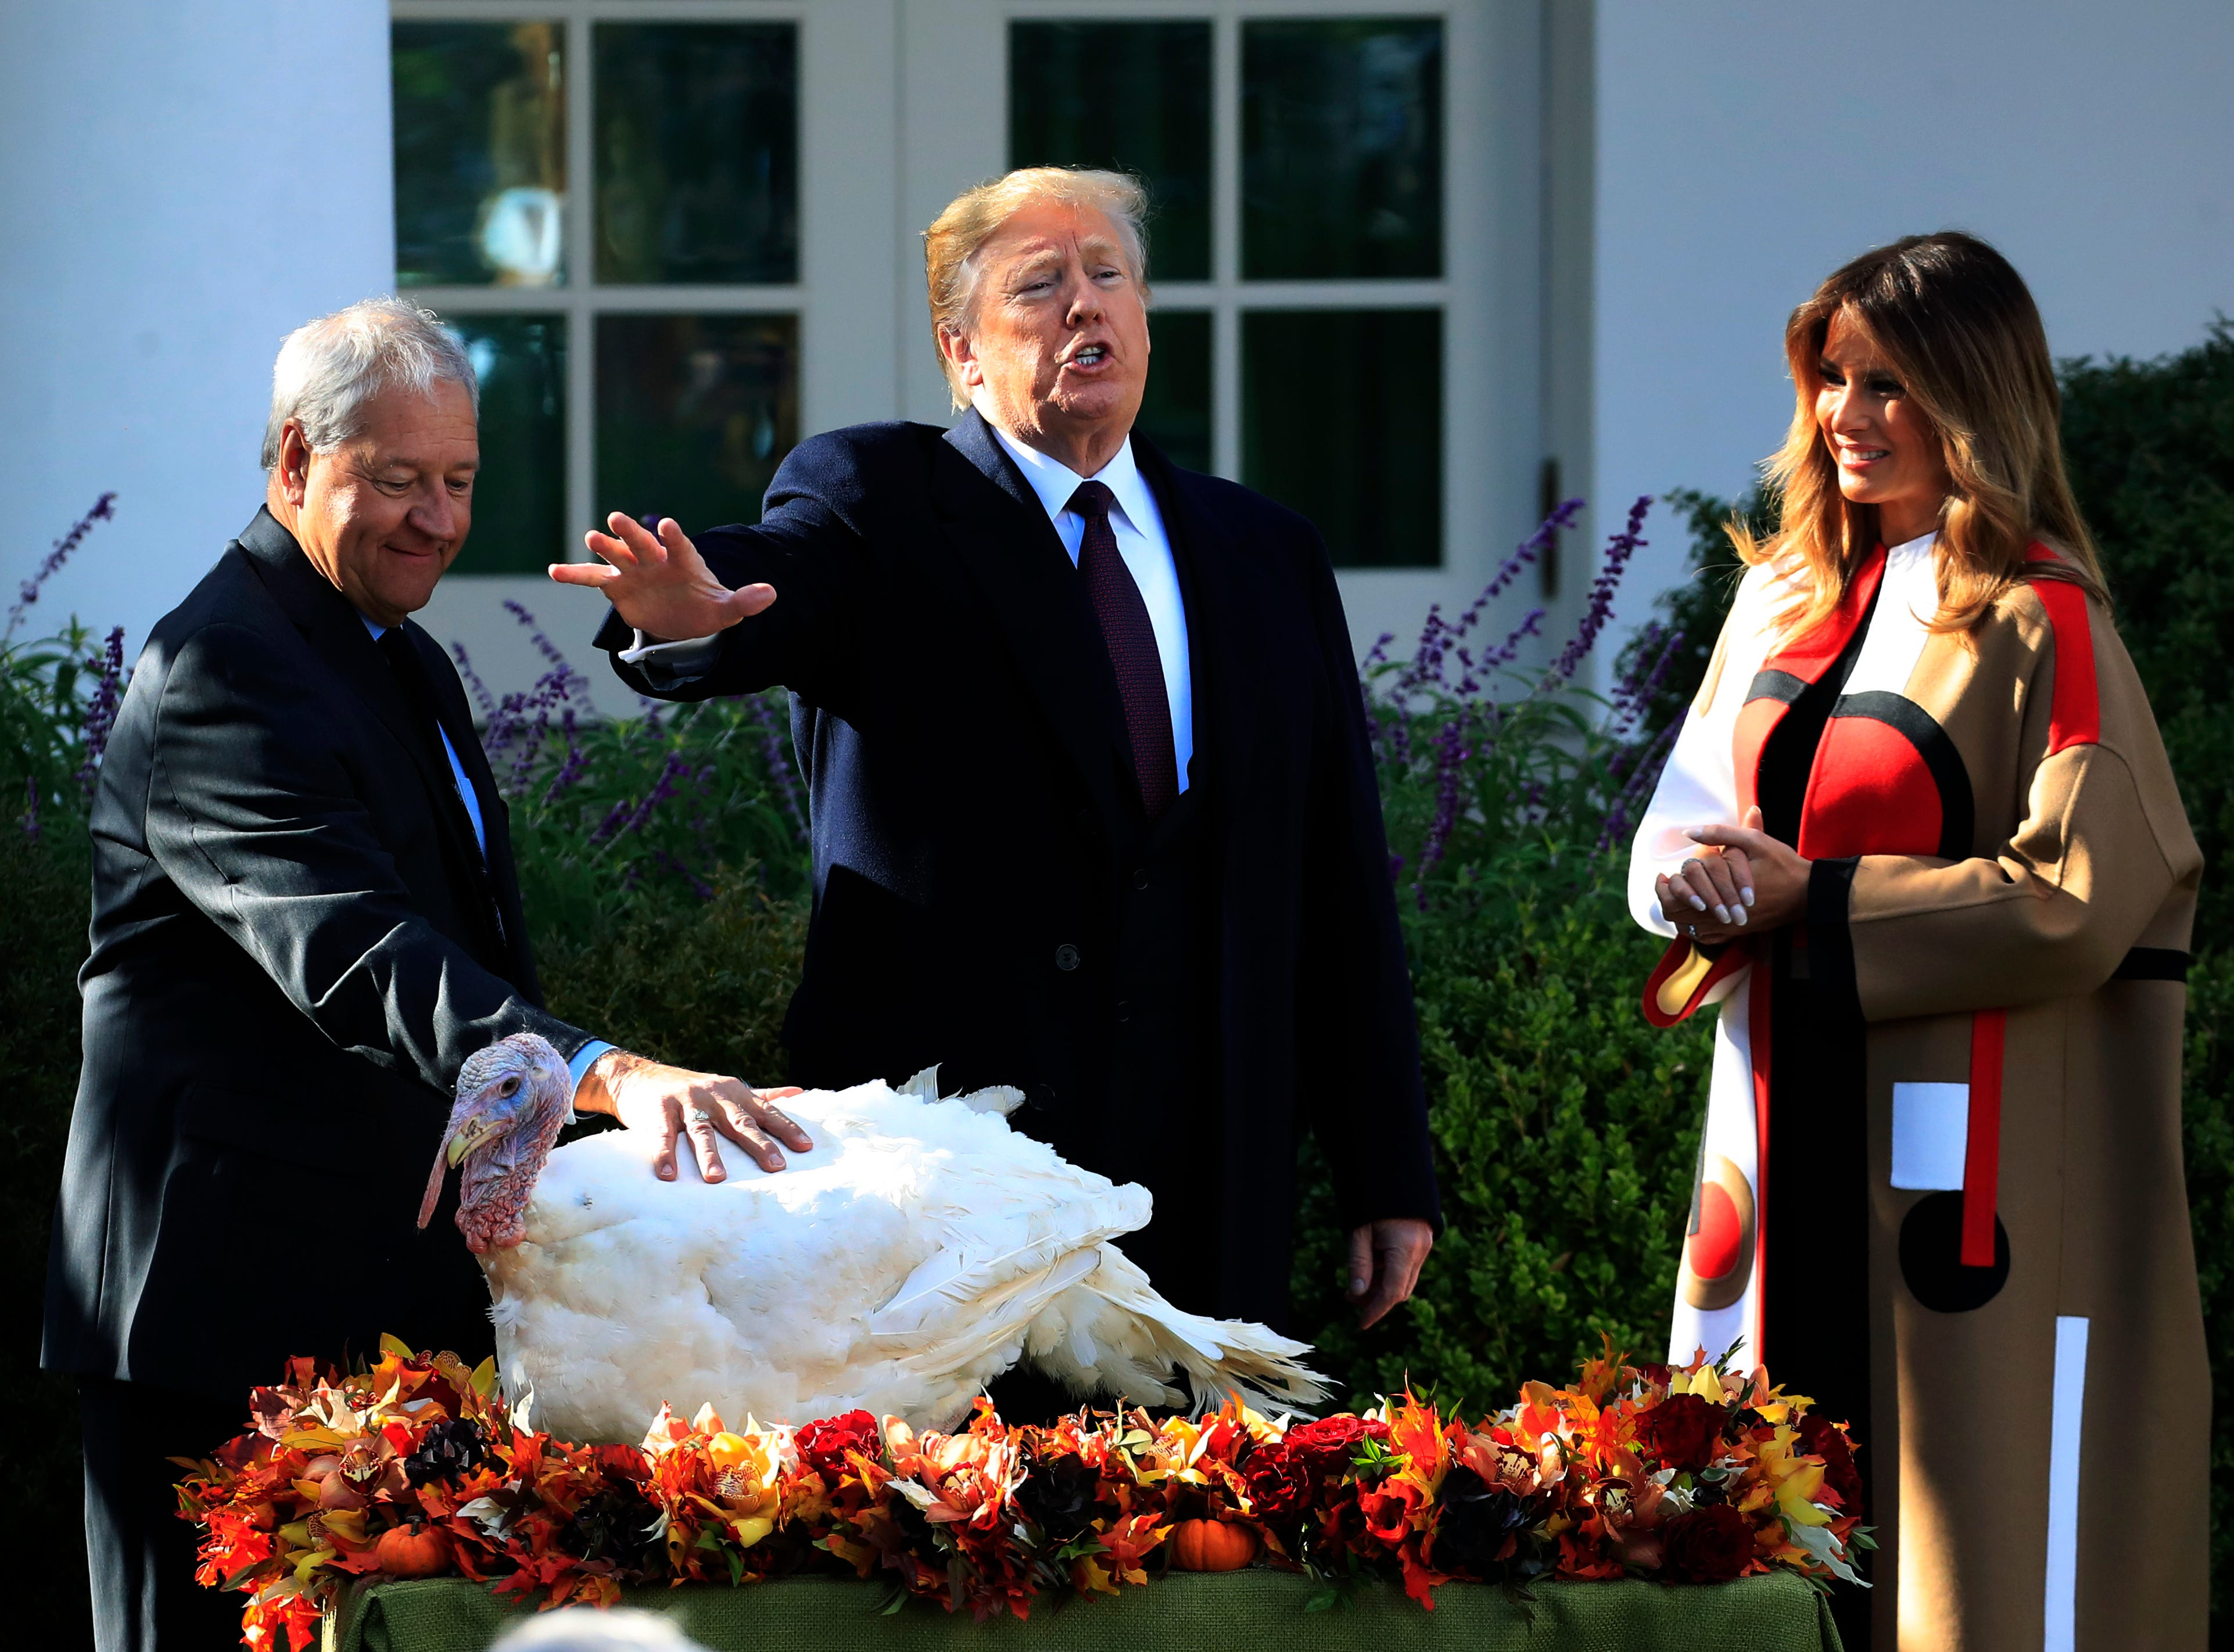 """President Donald Trump with first lady Melania Trump, right, gives """"Peas"""", on of the National Thanksgiving Turkeys, an absolute pardon during a ceremony in the Rose Garden of the White House, in Washington, Tuesday, Nov. 20, 2018. The pardoning ceremony marked the 71st year since it first took place in 1947. (AP Photo/Manuel Balce Ceneta)"""